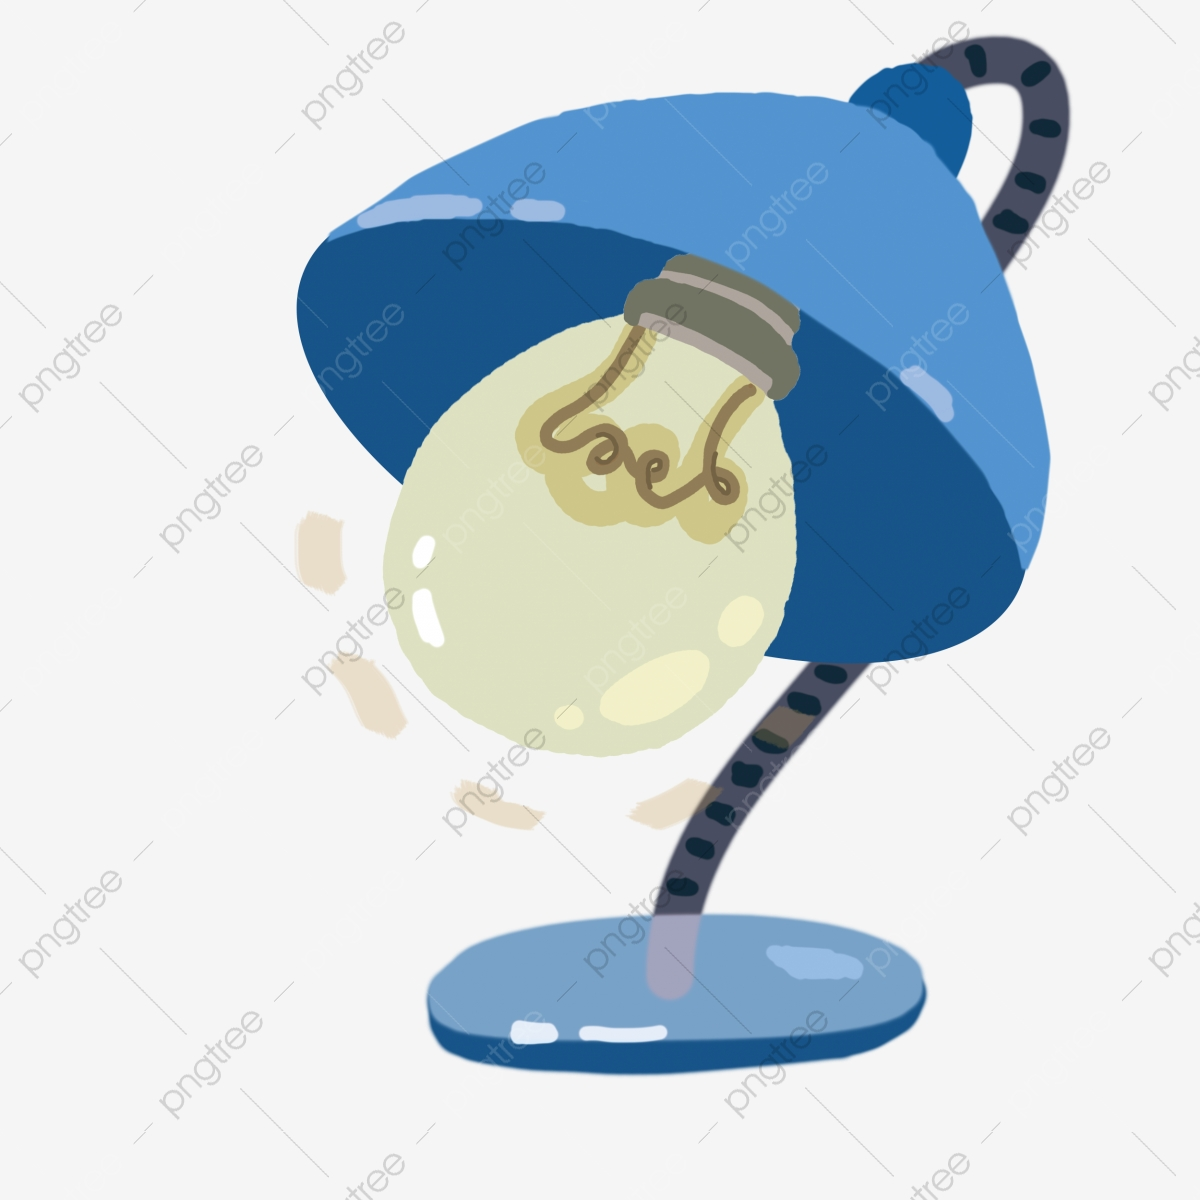 Blue Cartoon Modern Table Lamp Blue Cartoon Modern Table Lamp Png Transparent Clipart Image And Psd File For Free Download